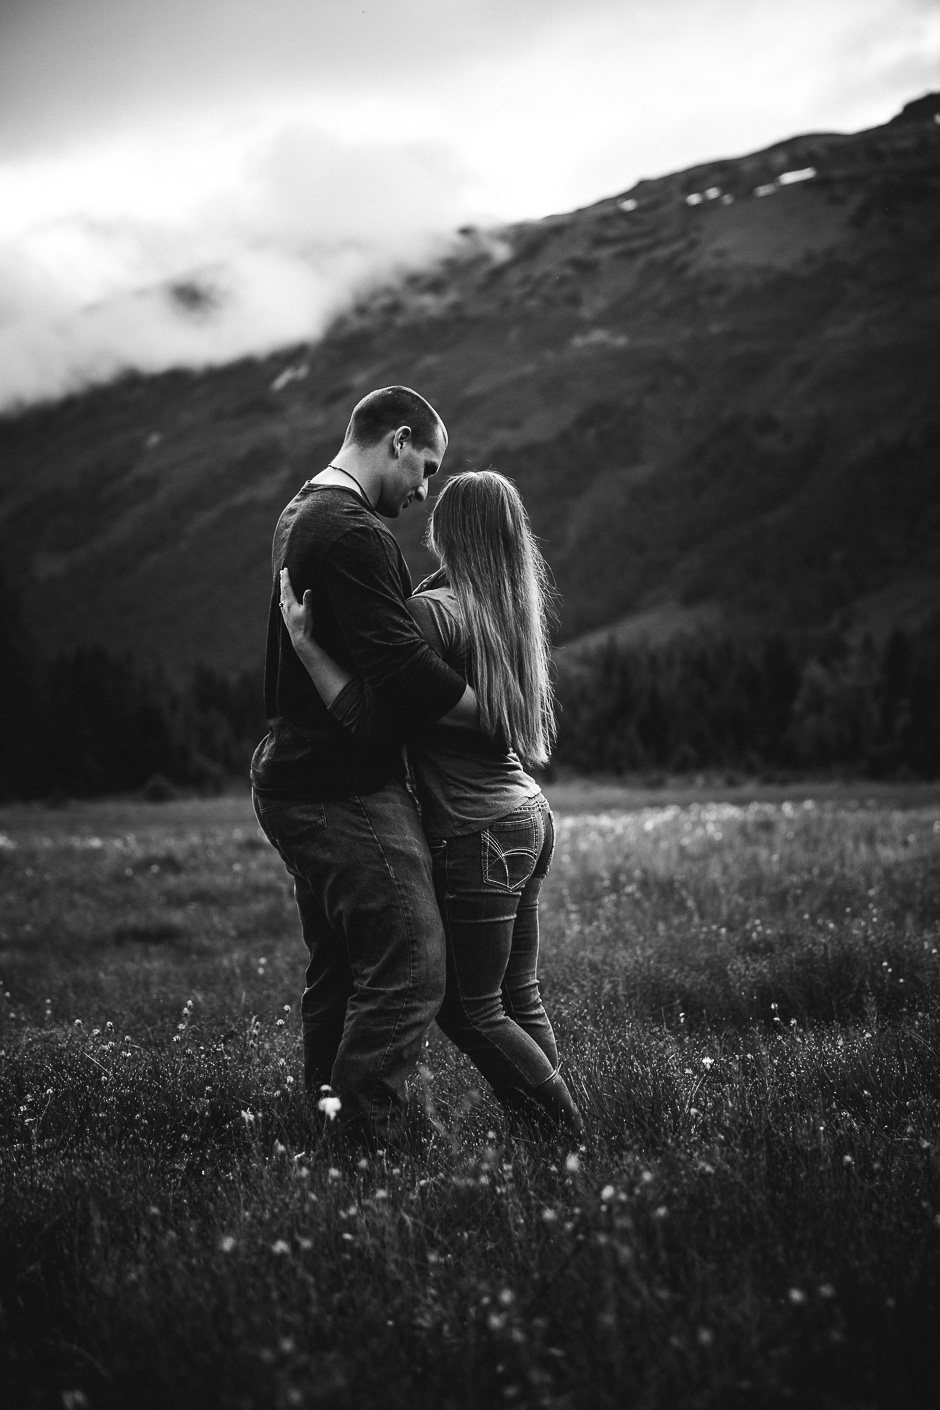 anchorage_couples_engagement_photographer_160626-3